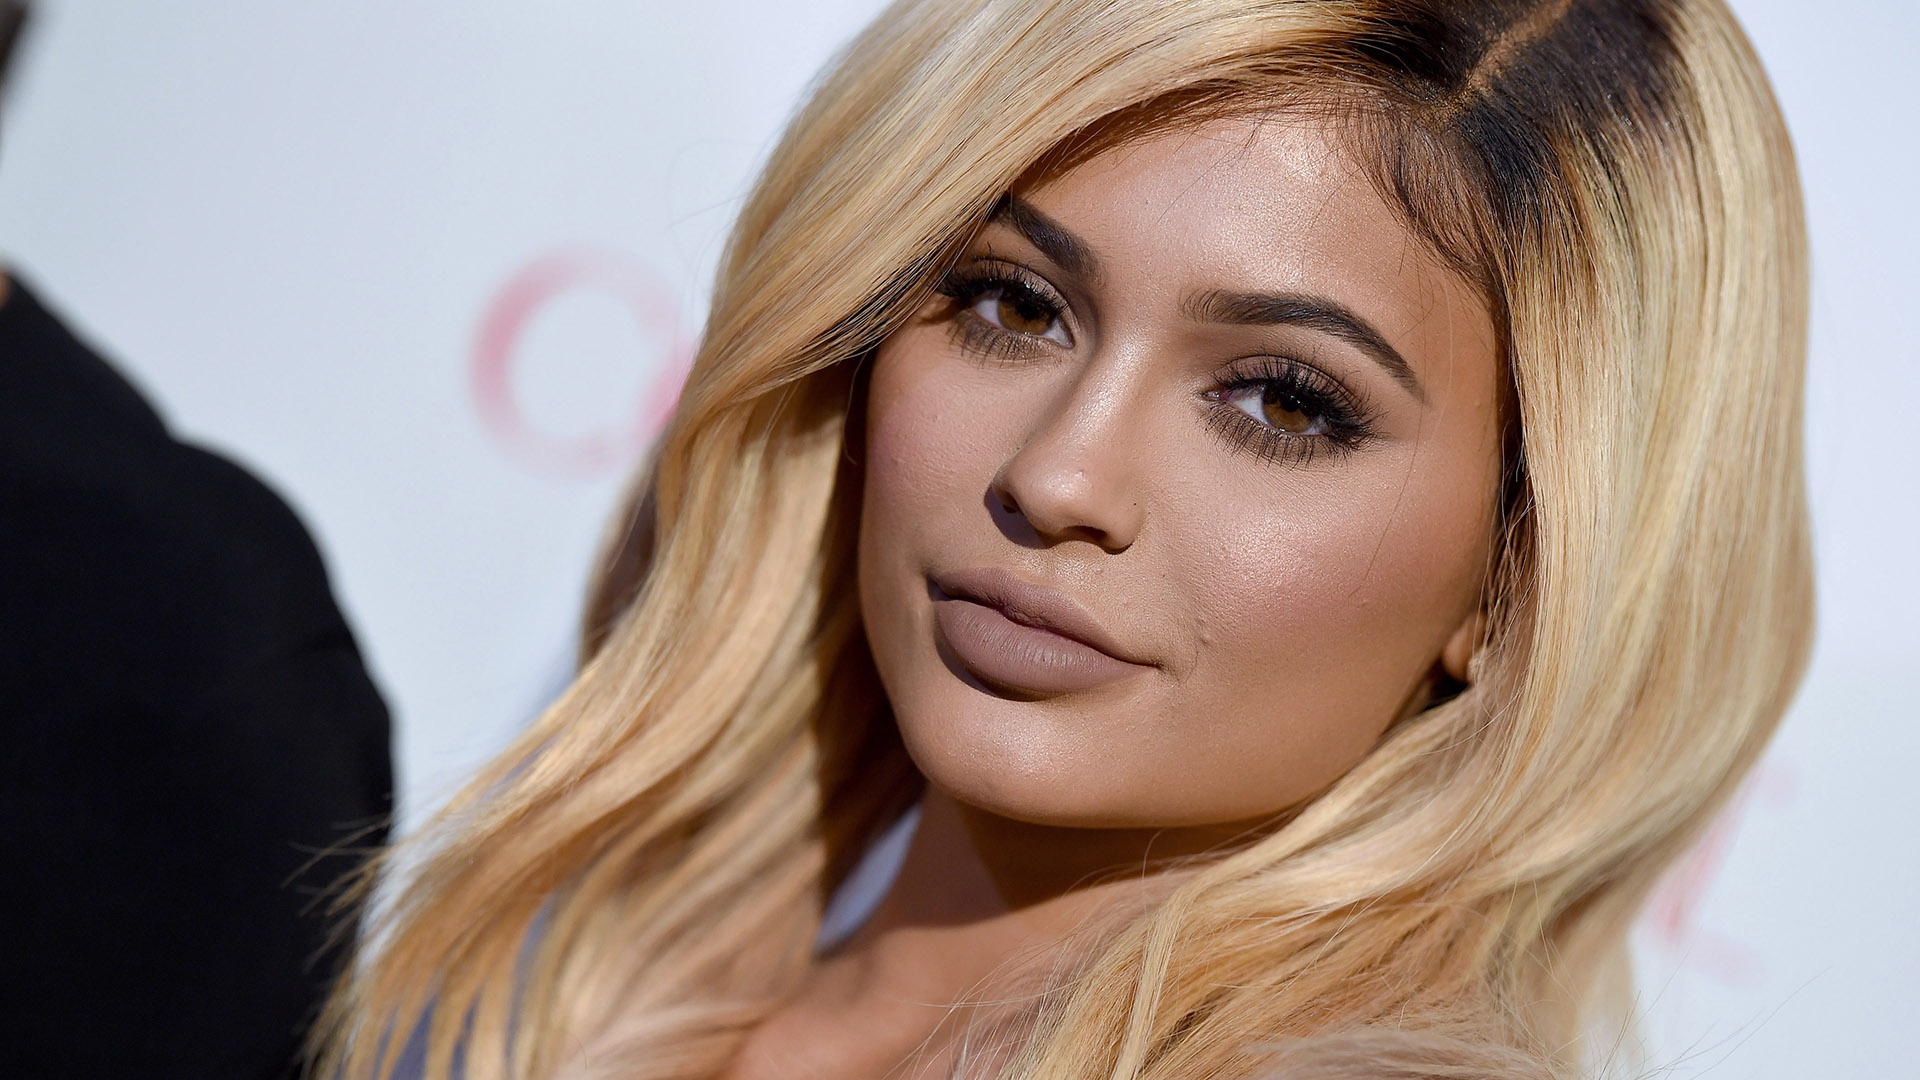 Fans Think Kylie Jenner Had Her Lip Fillers Dissolved Because of This Photo